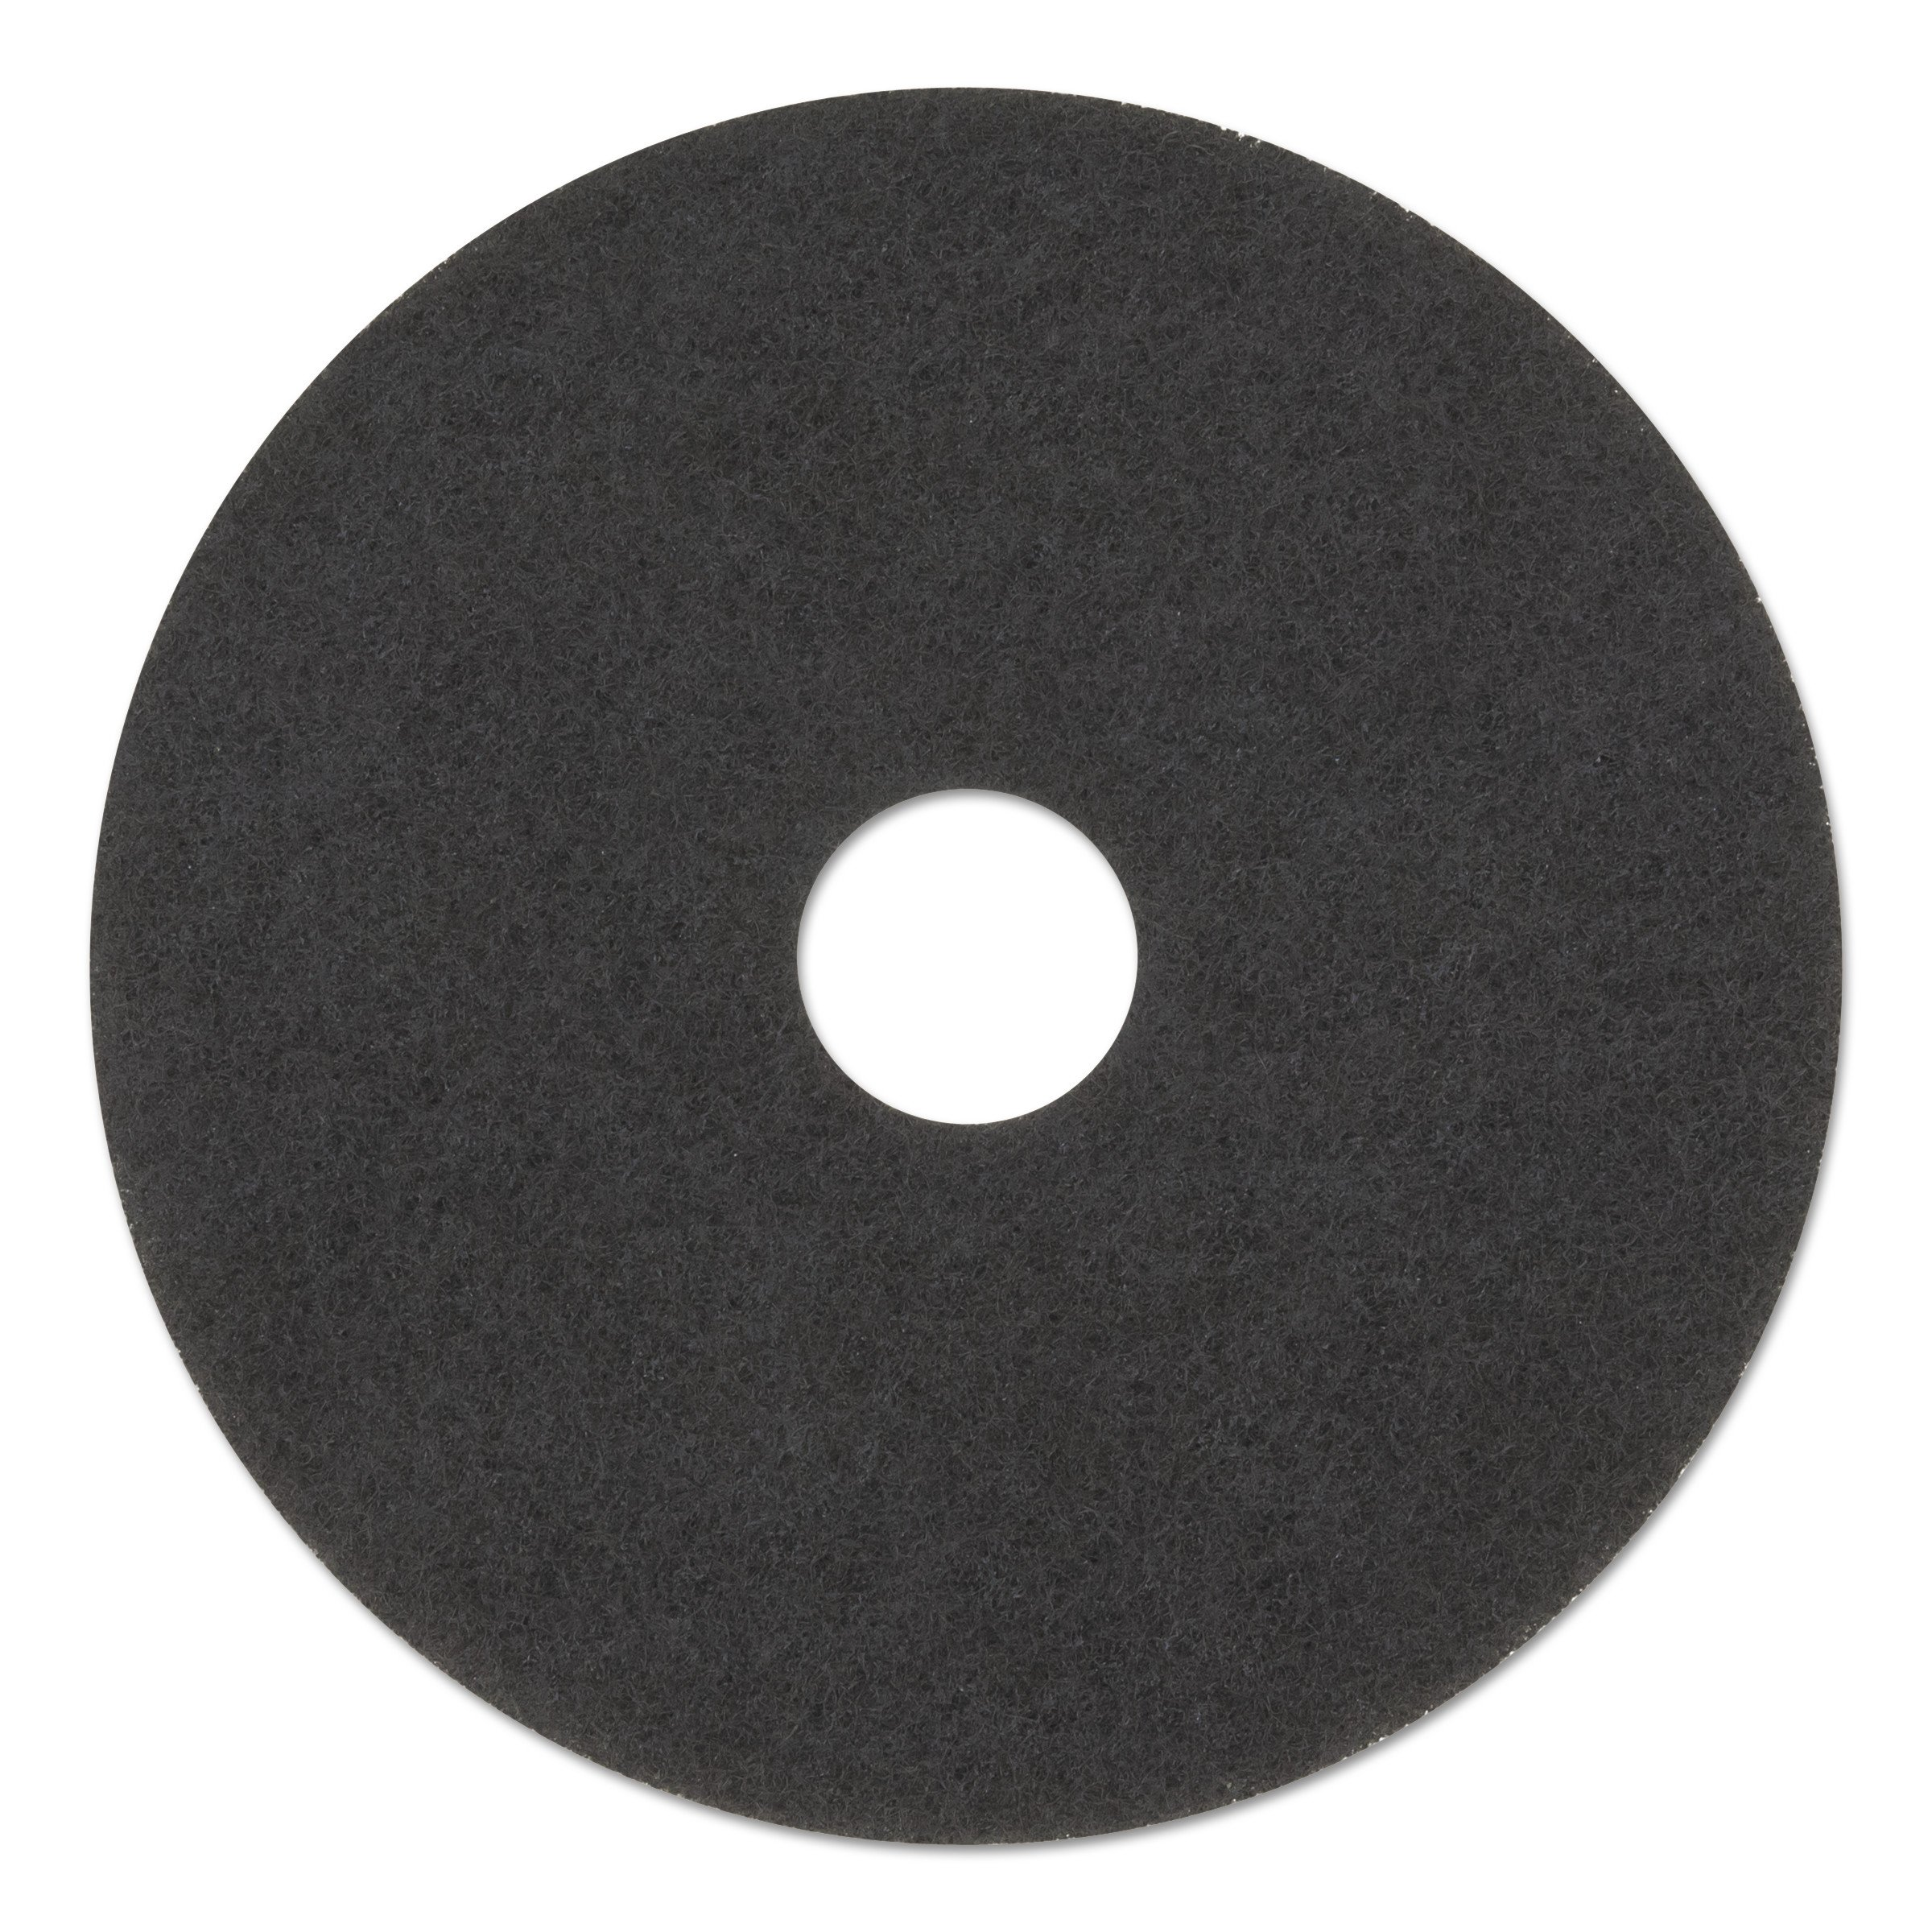 Boardwalk 4020BLA Standard Floor Pads, 20'' Diameter, Black, (Case of 5) by Premiere Pads